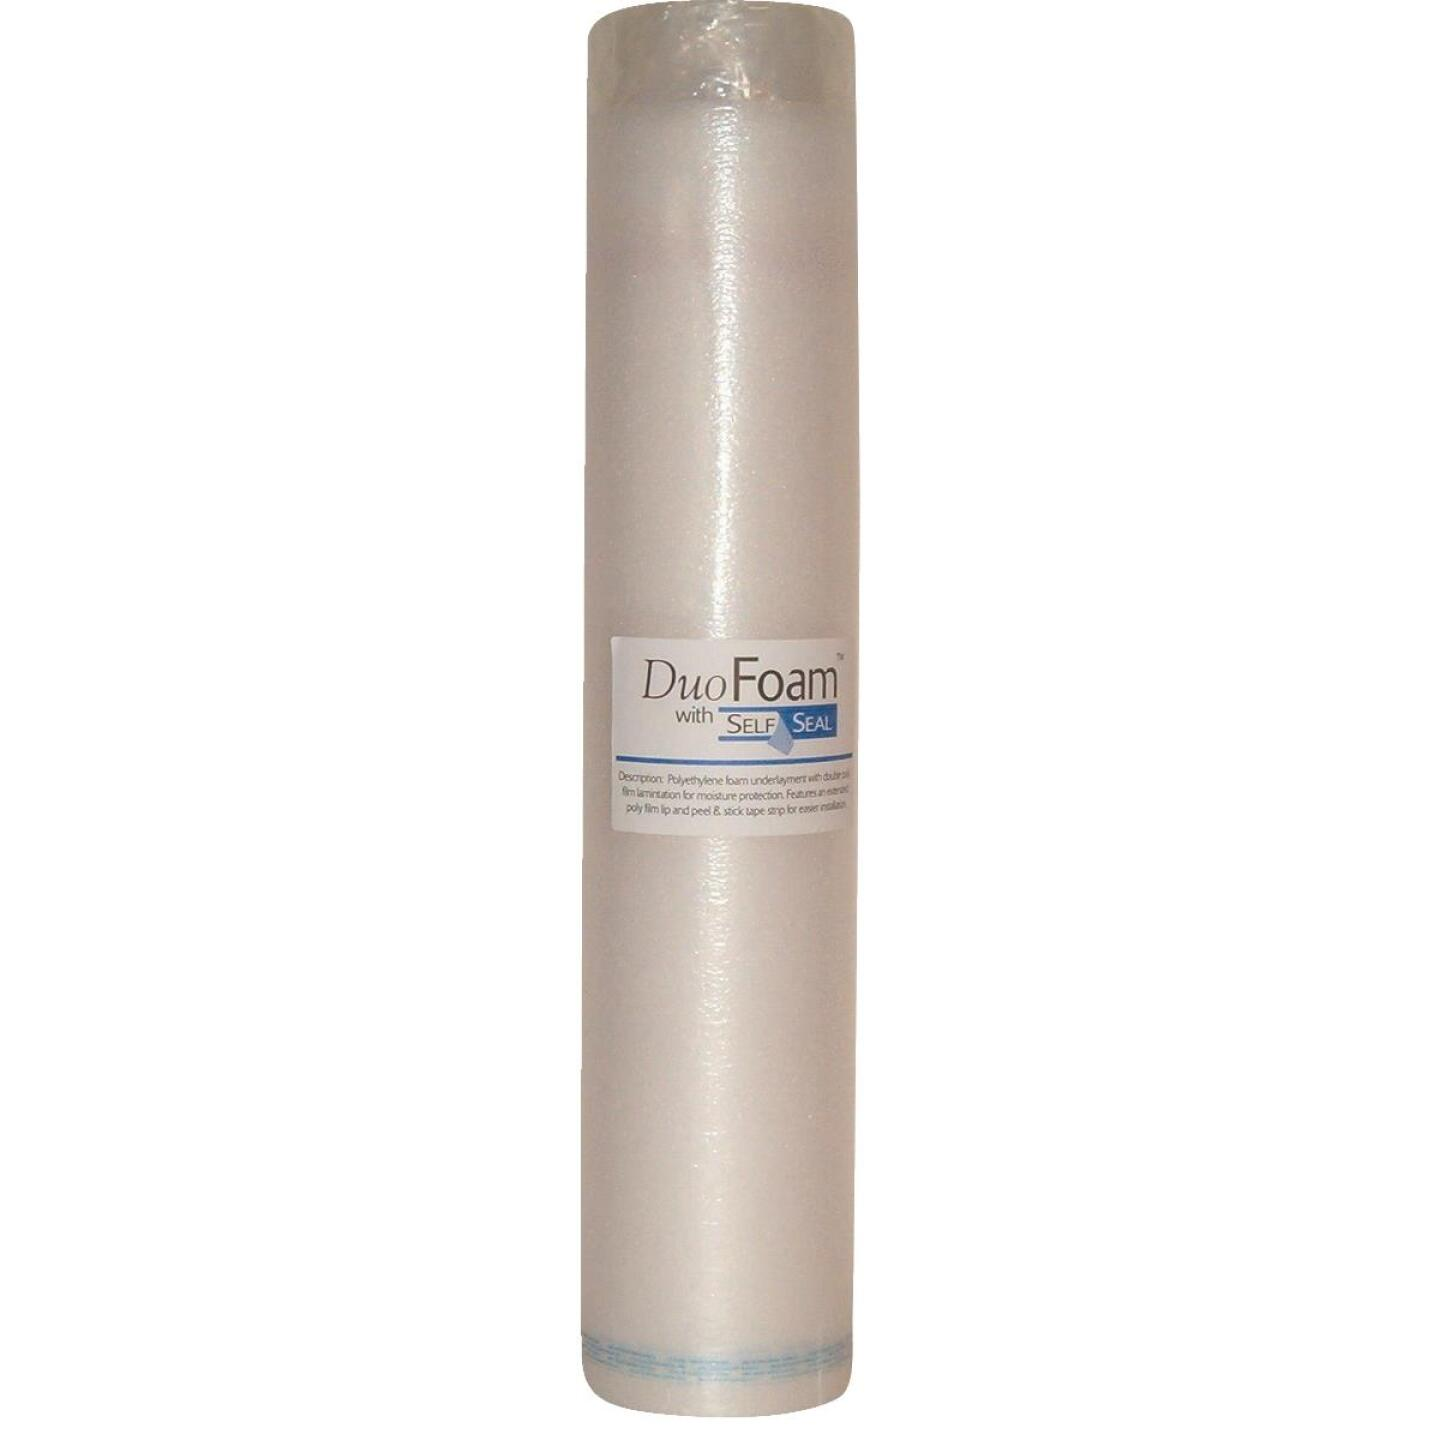 DuoFoam 40 In. W x 30.3 Ft. L Self-Seal Underlayment, 100 Sq. Ft./Roll Image 1